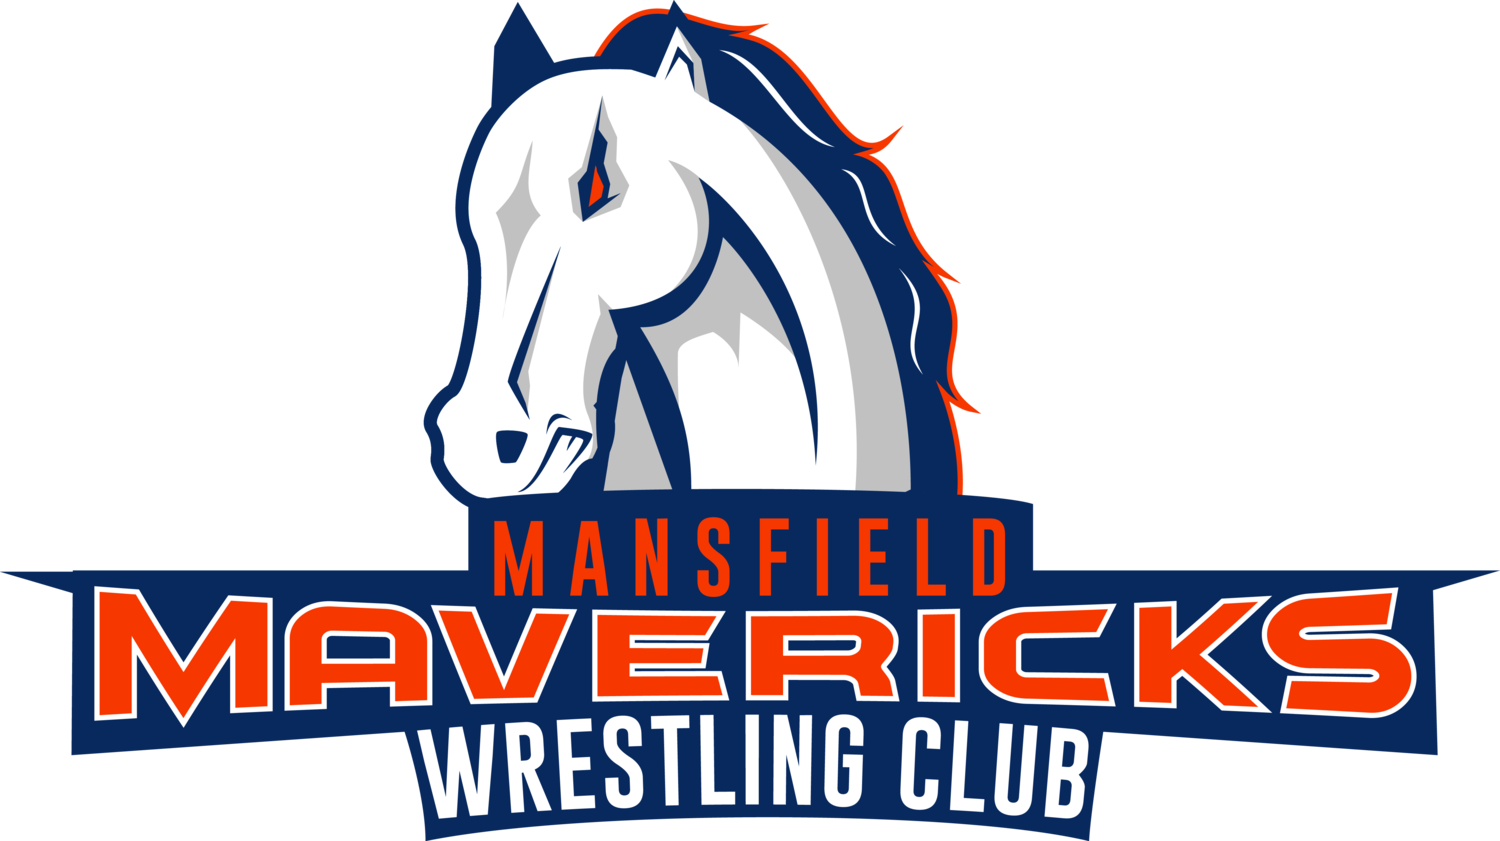 High school wrestling mat clipart image free stock What We Do — Mansfield Wrestling Club image free stock